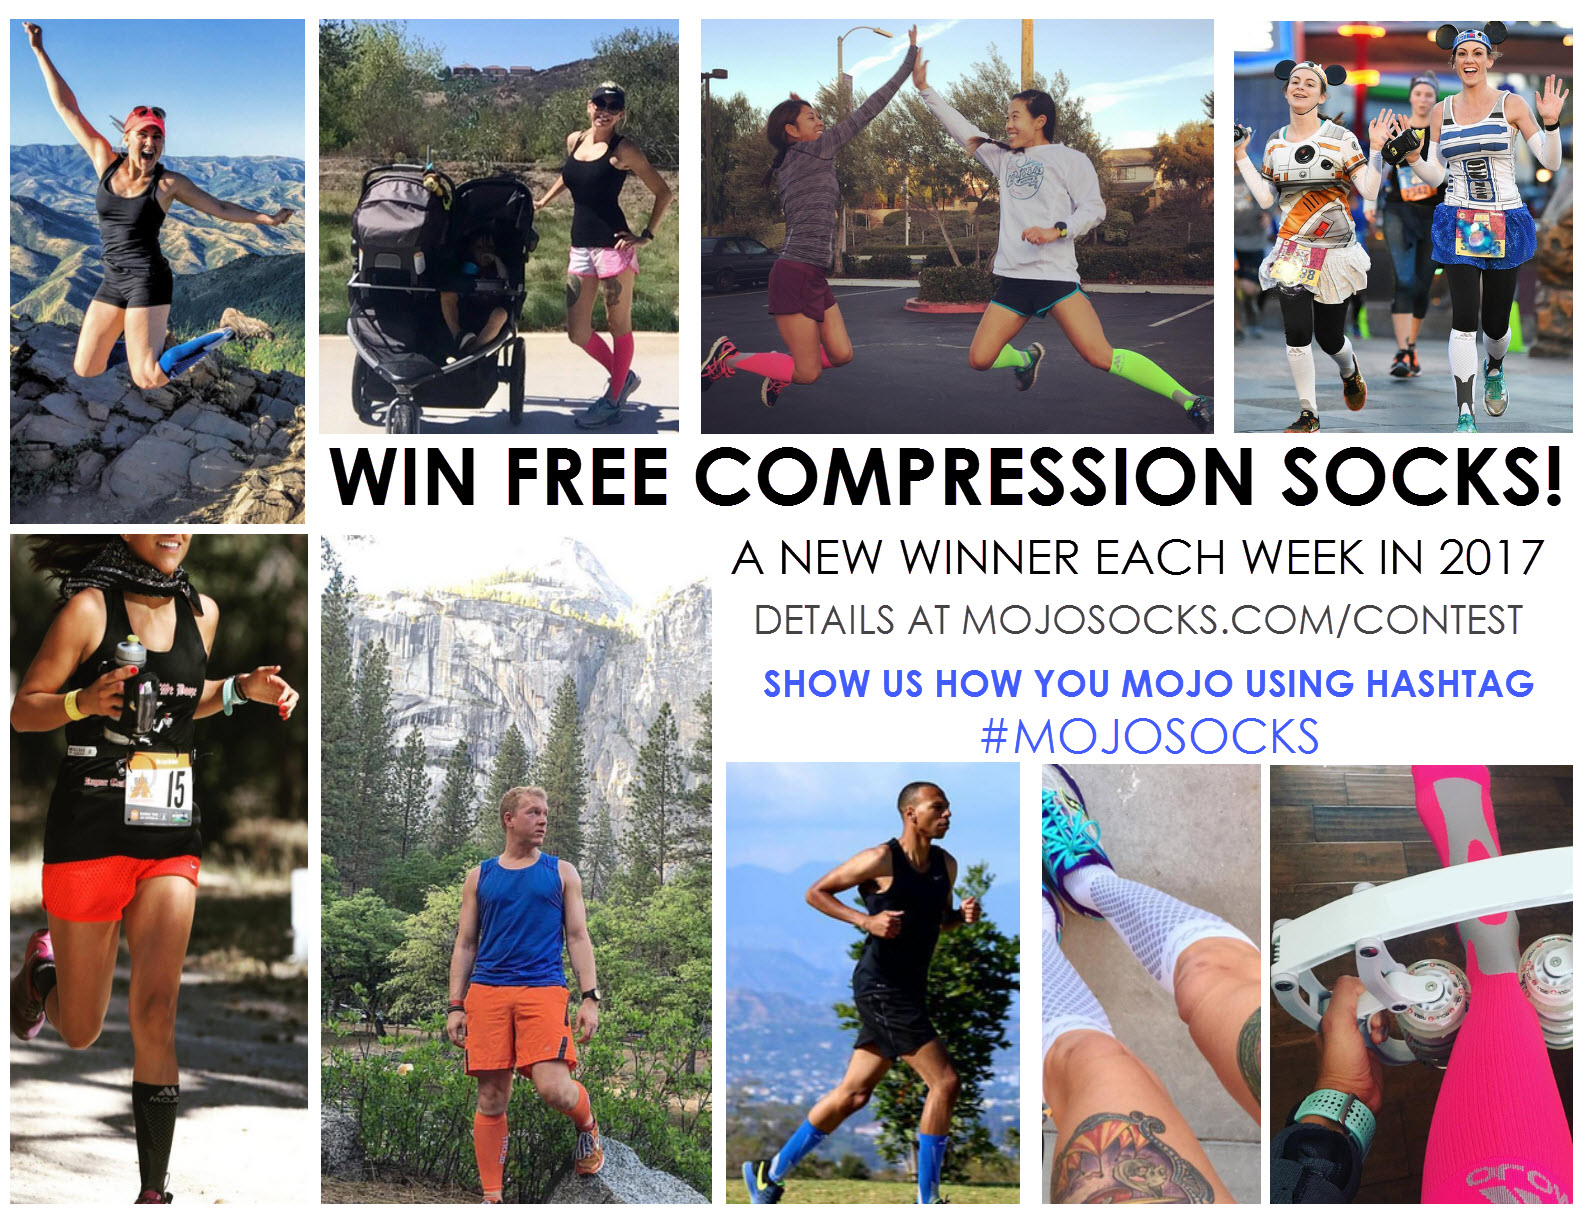 Win free compression socks!